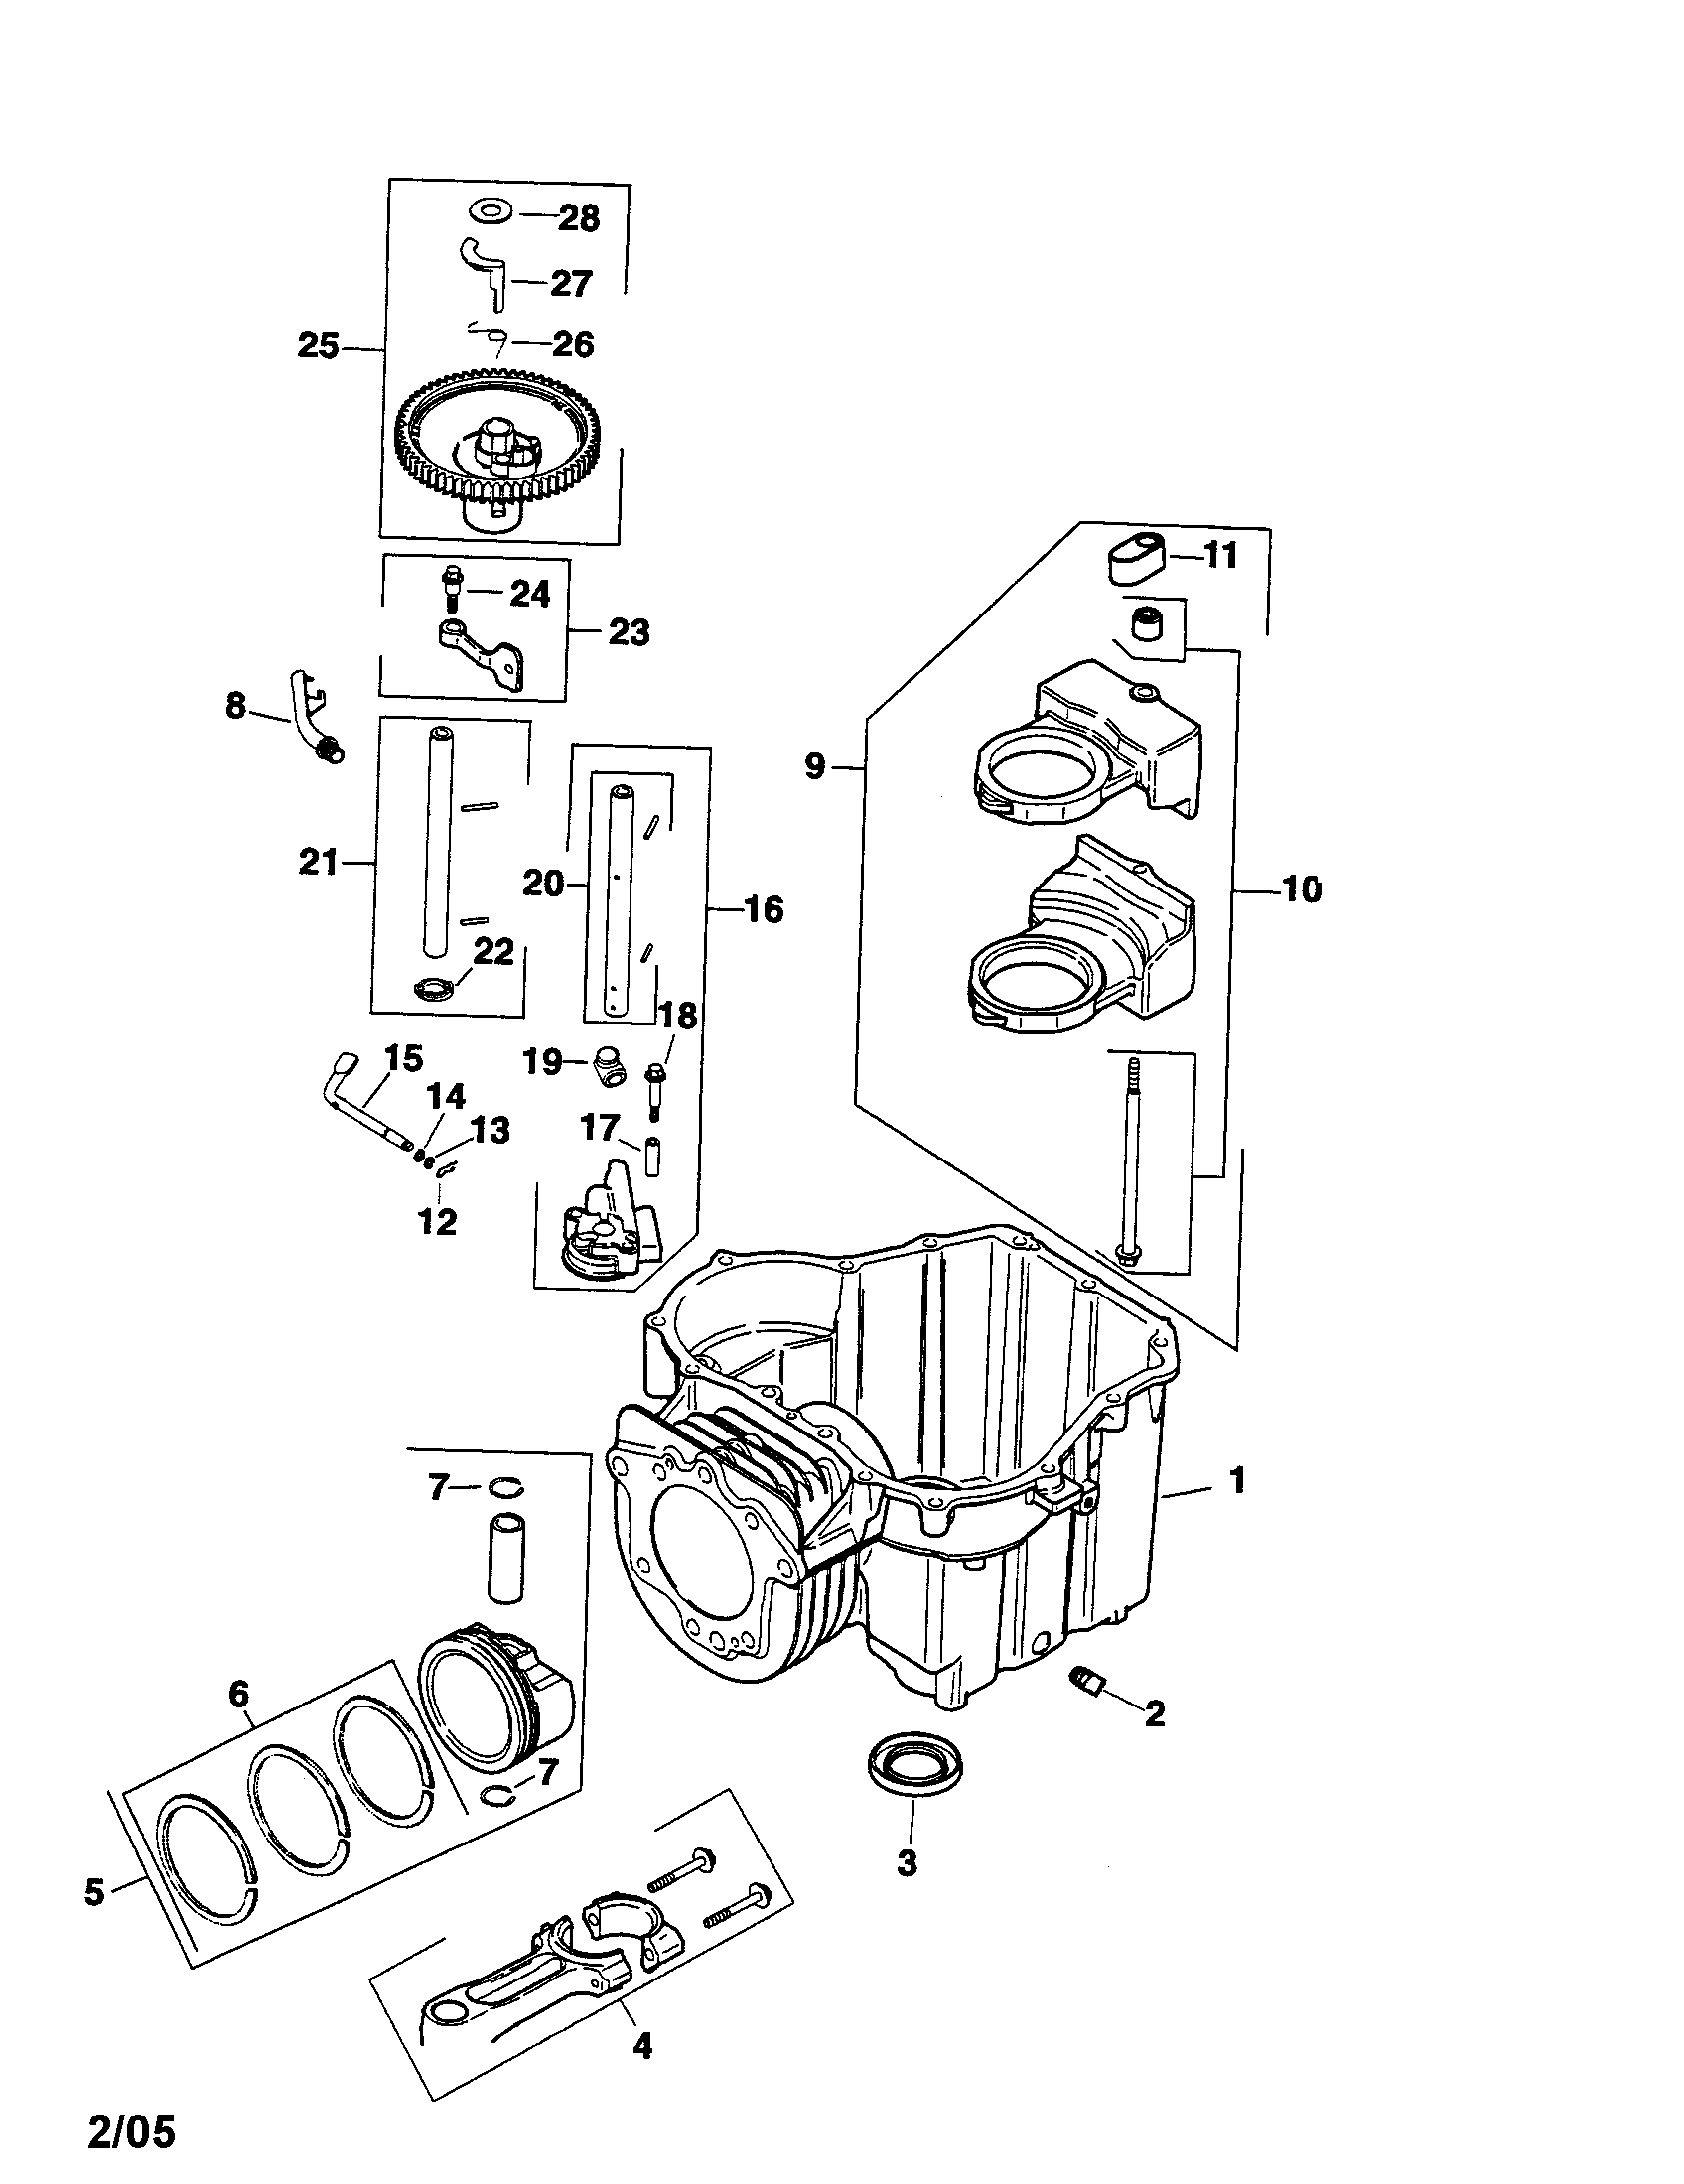 1972 Kohler Engines Parts Diagram, 1972, Free Engine Image